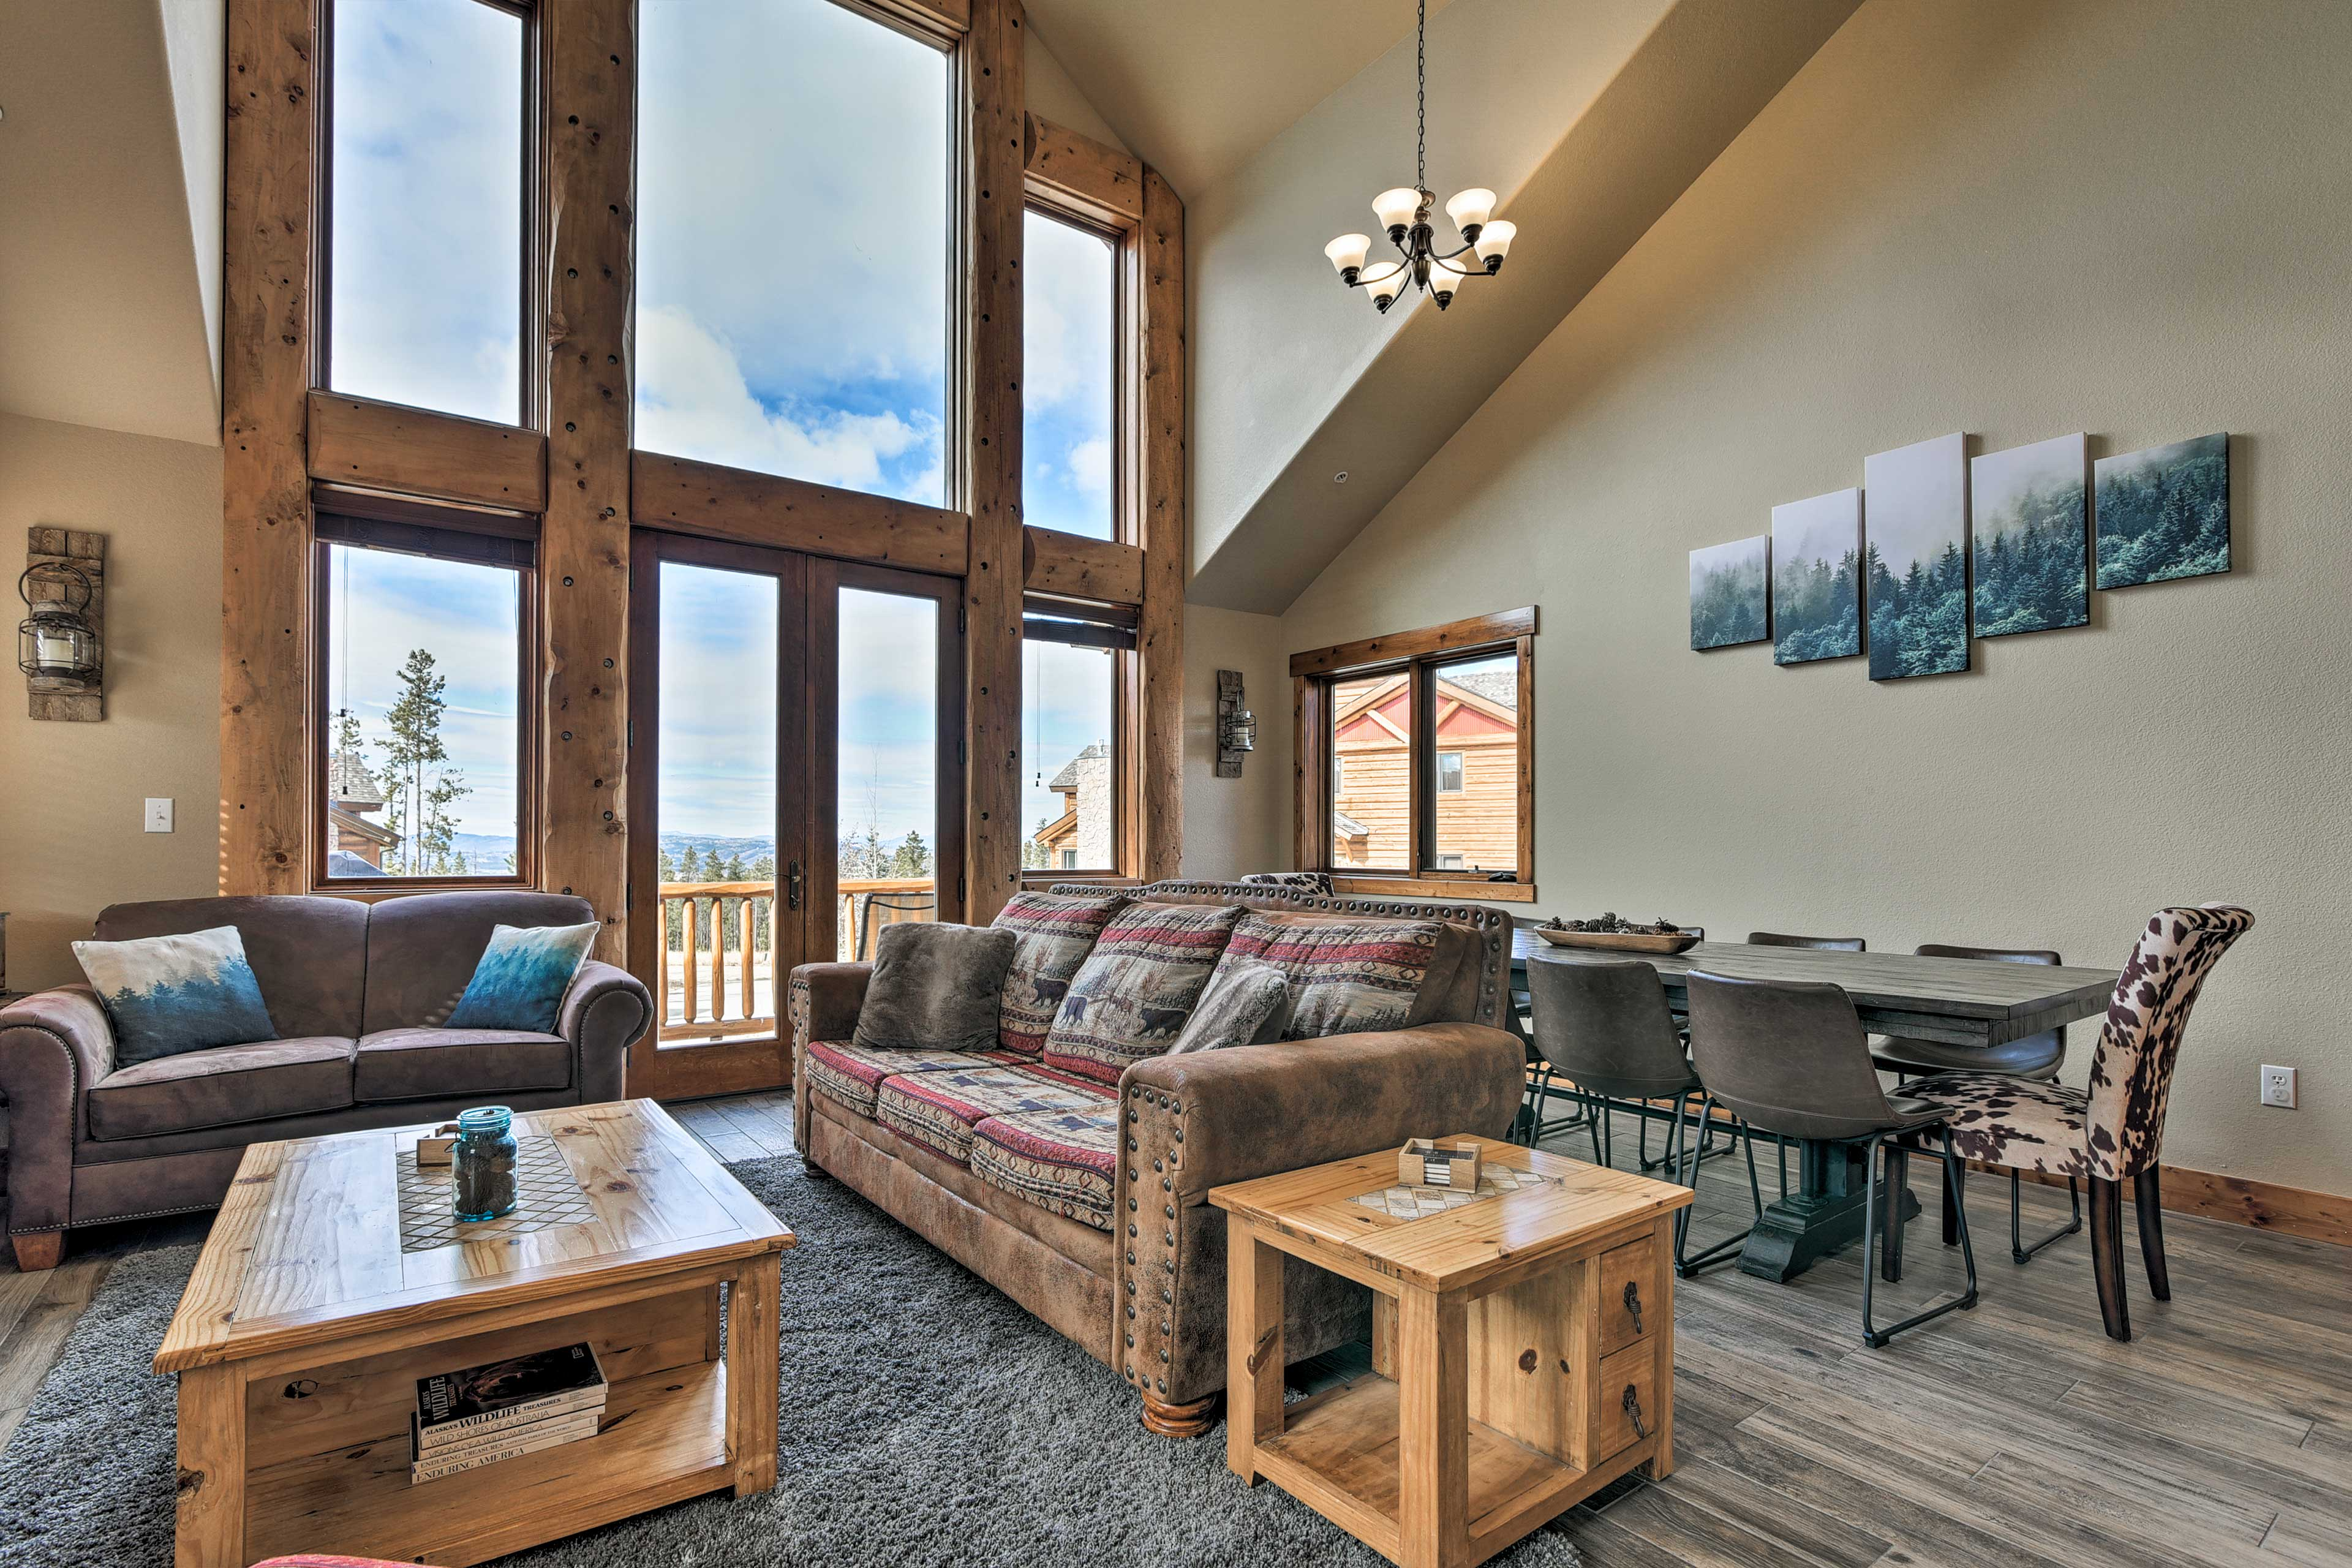 Get cozy in front of the gas fireplace.